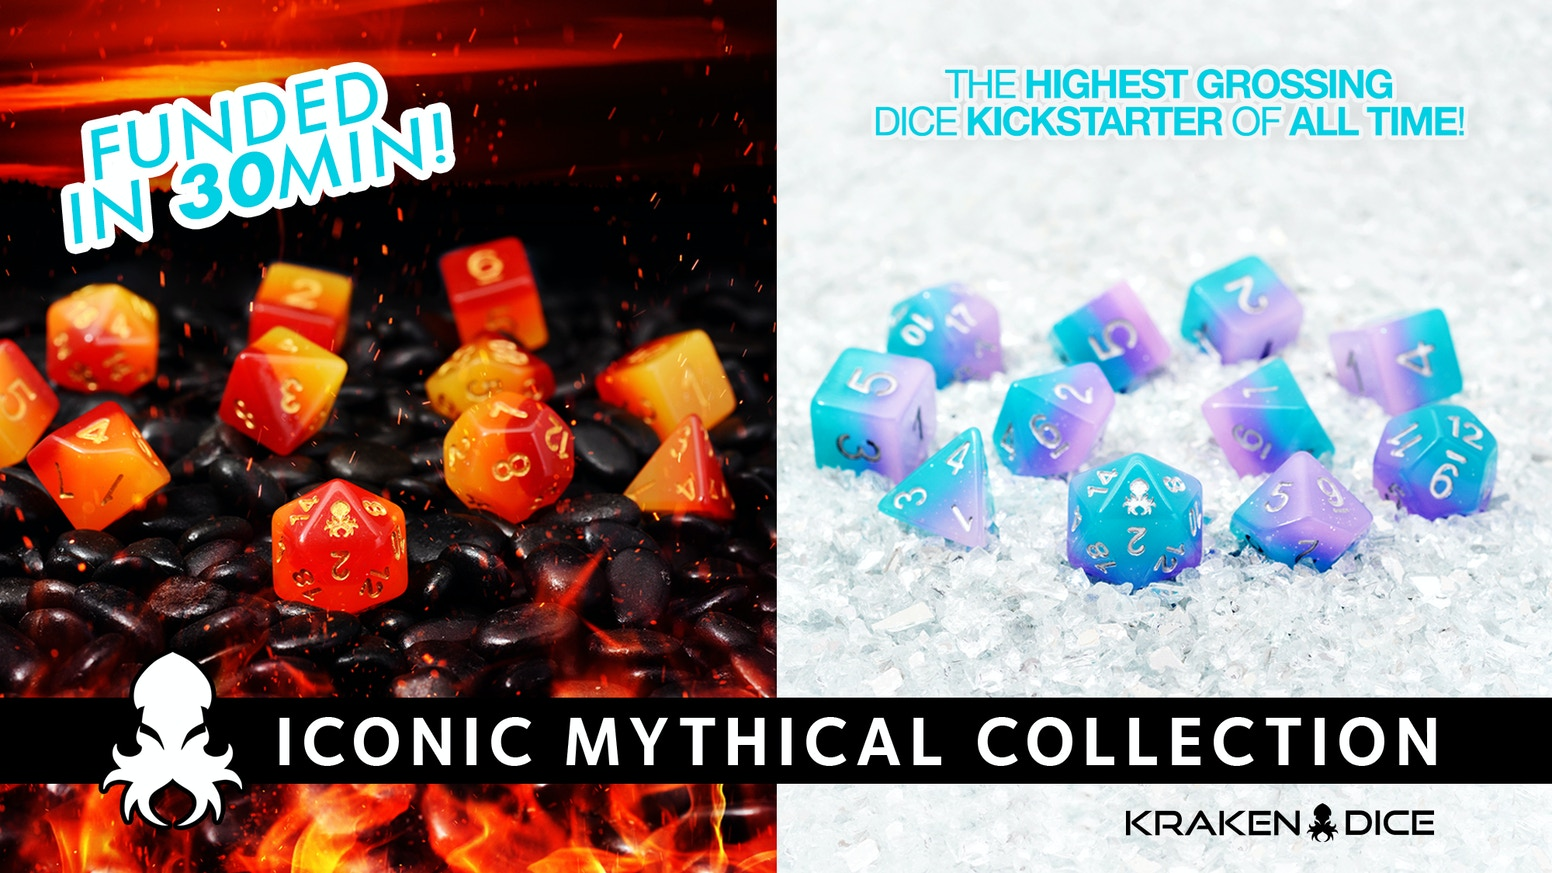 Iconic Mythical Collection RPG Dice Sets by Kraken Dice is the top crowdfunding project launched today. Iconic Mythical Collection RPG Dice Sets by Kraken Dice raised over $1024774 from 12257 backers. Other top projects include Citizens Of Culture: An Art Space For ALL OF US, ZZap! 64 Annual 2019 - the next chapter, CLIKKEY - Quick Release Magnetic Keychain Carabiner...